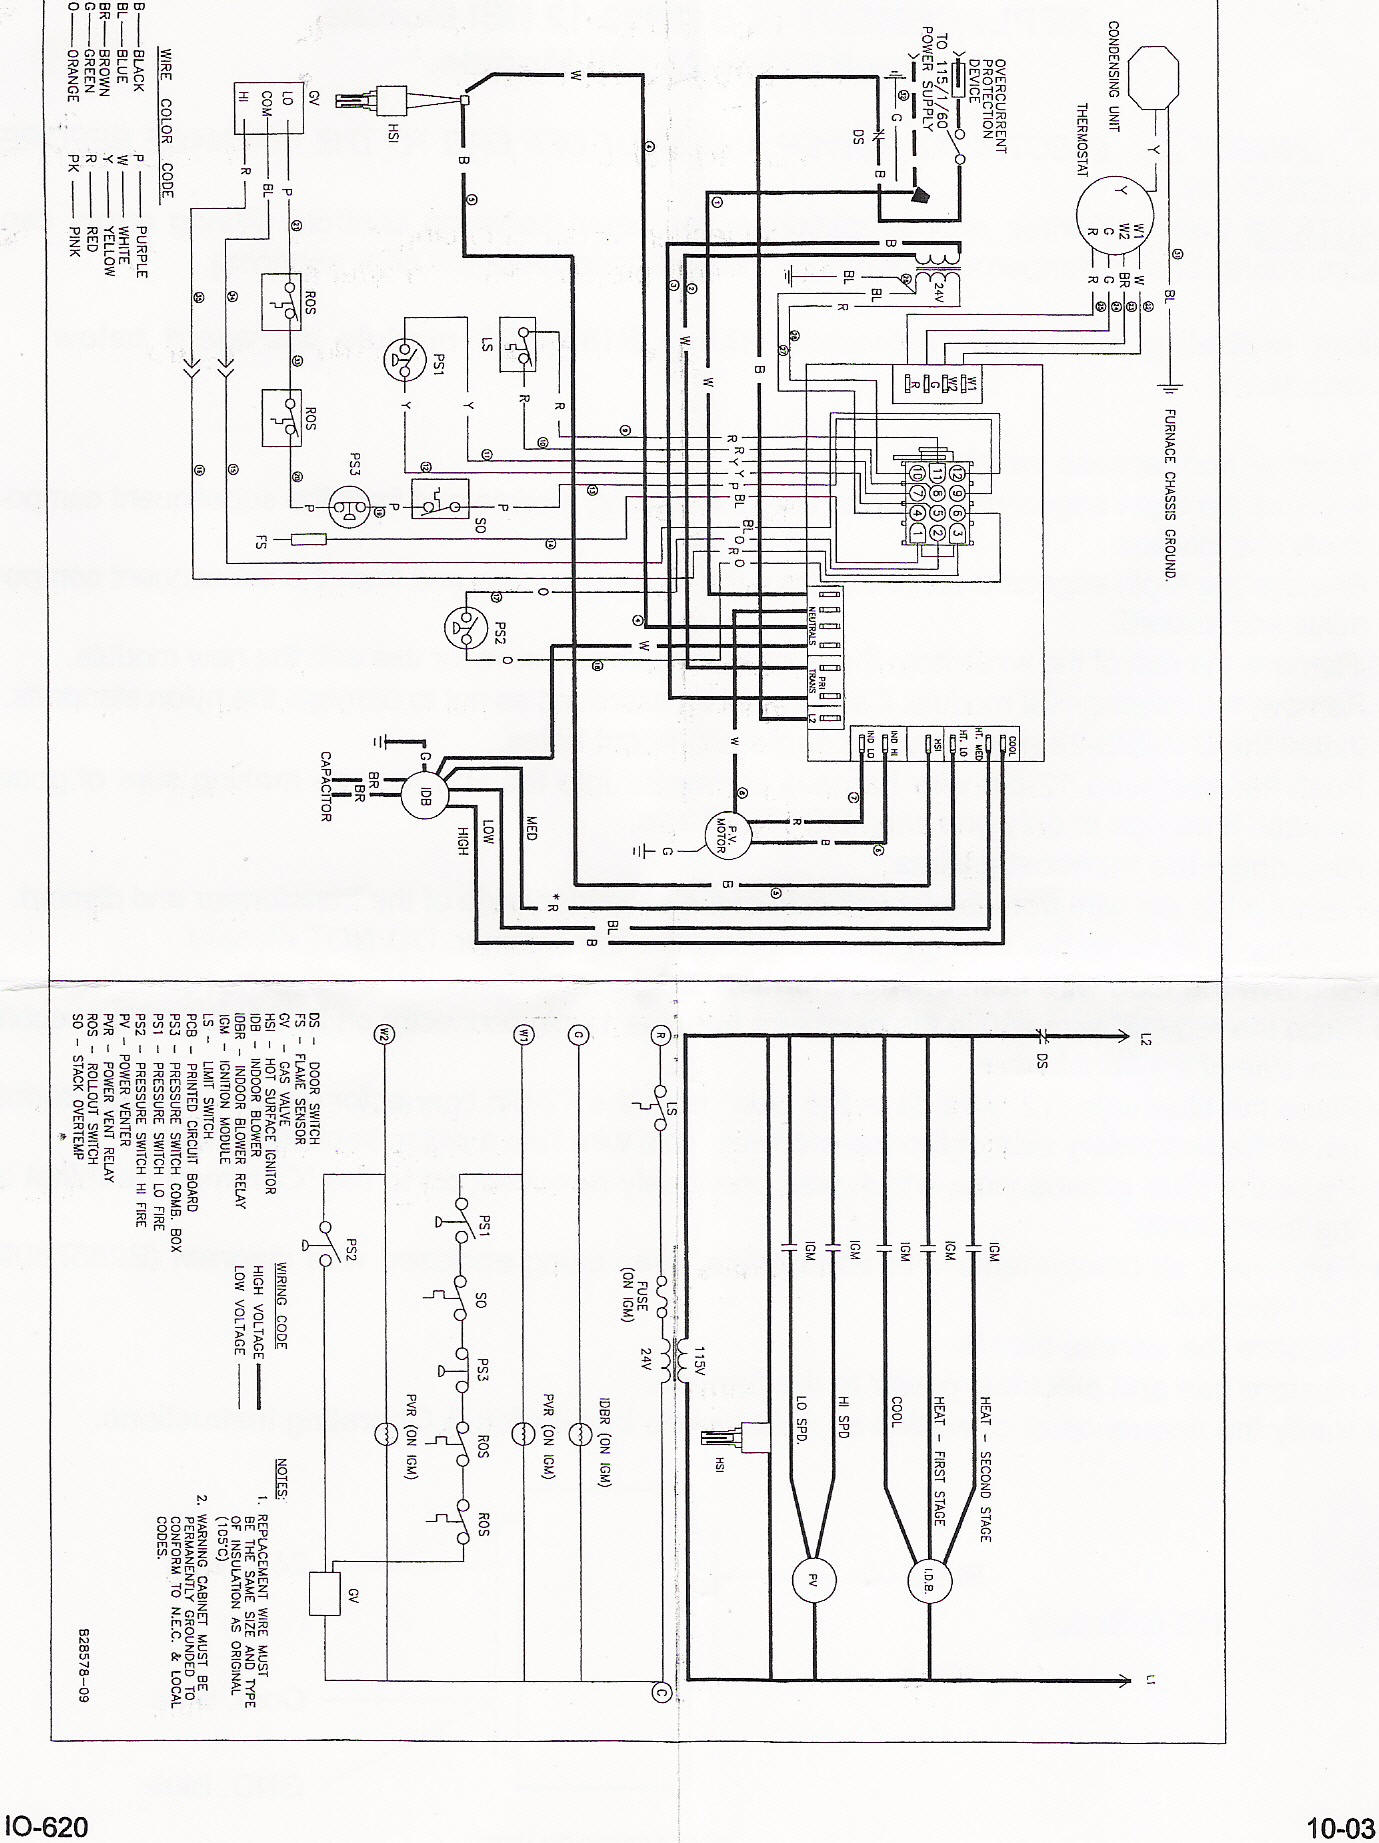 goodma2 instr goodman control board b18099 23 instructions Basic Electrical Wiring Diagrams at couponss.co